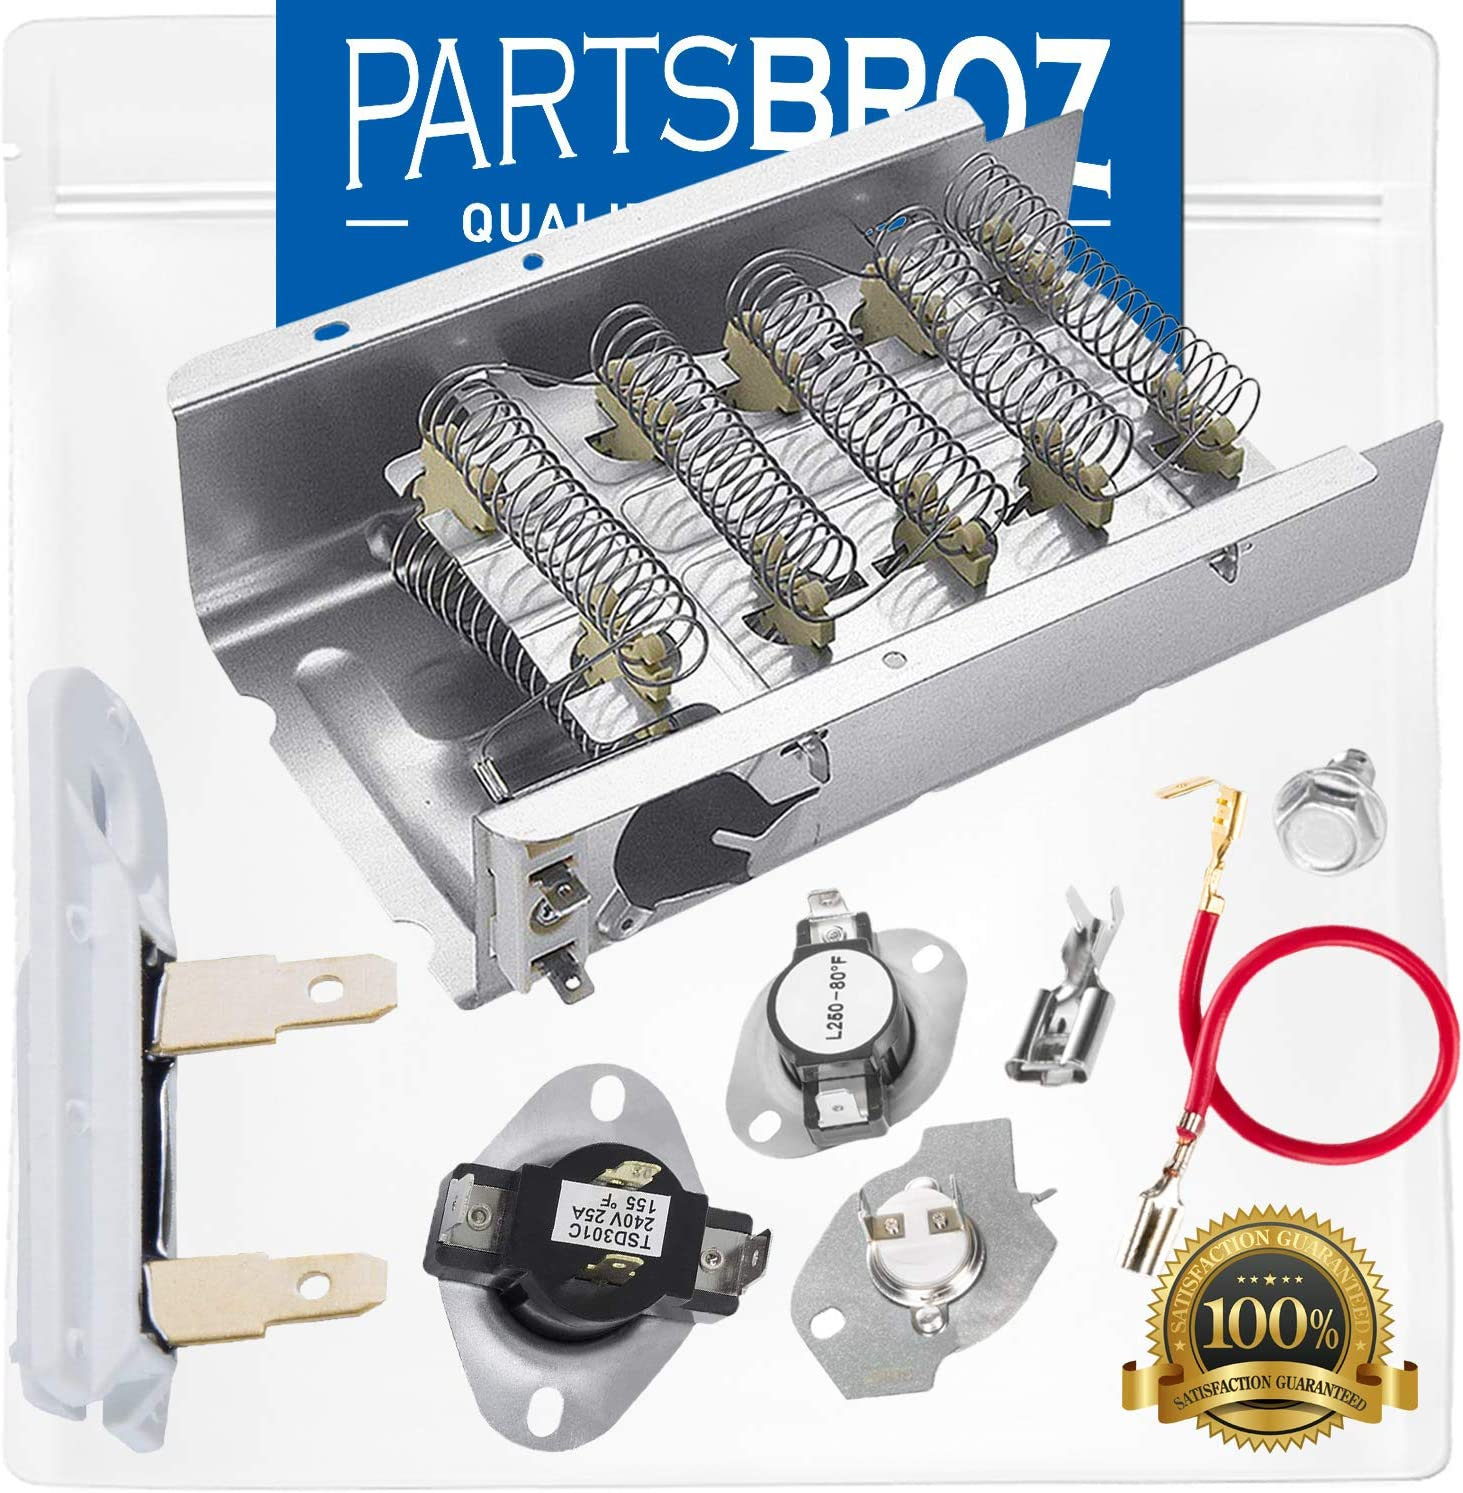 279838 Heating Element & 279816 Thermal Cut-Off Kit & 3392519 Thermal Fuse & 3387134 Cycling Thermostat by PartsBroz - Compatible with Whirlpool Dryers - Replaces 2438, 279838A, 279838VP, 3398063